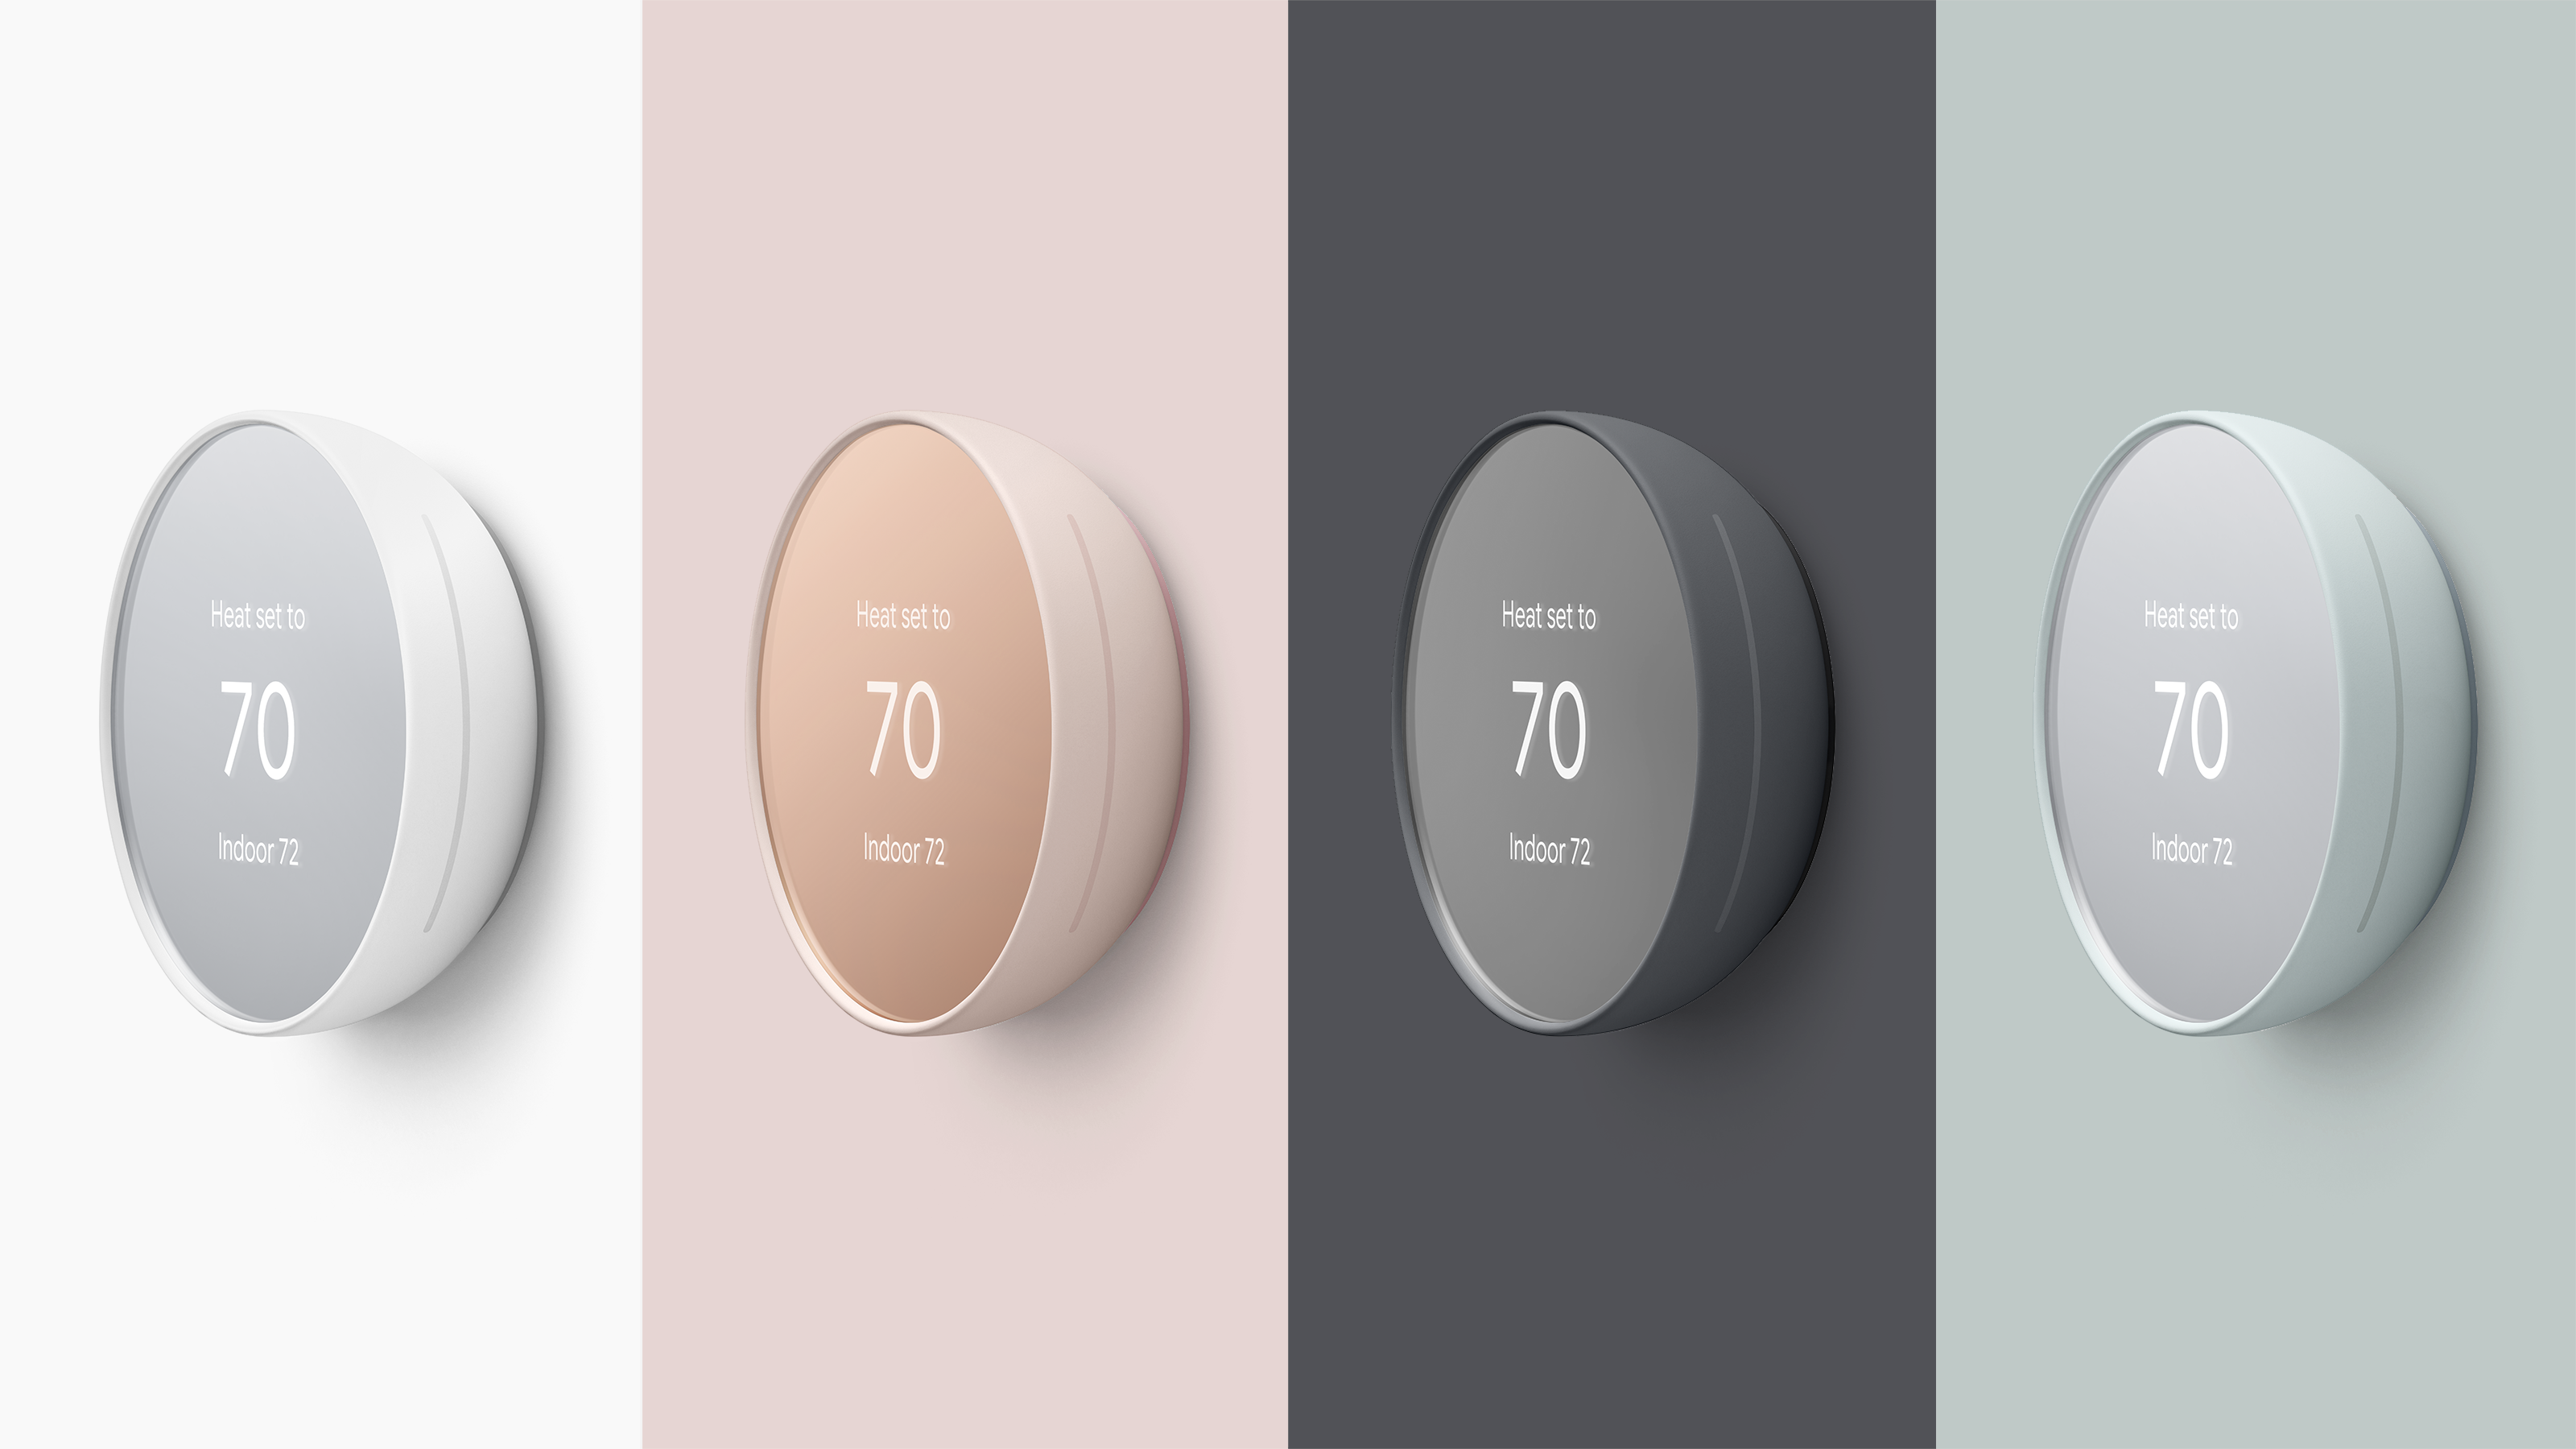 nest-thermostat-all-colors.png